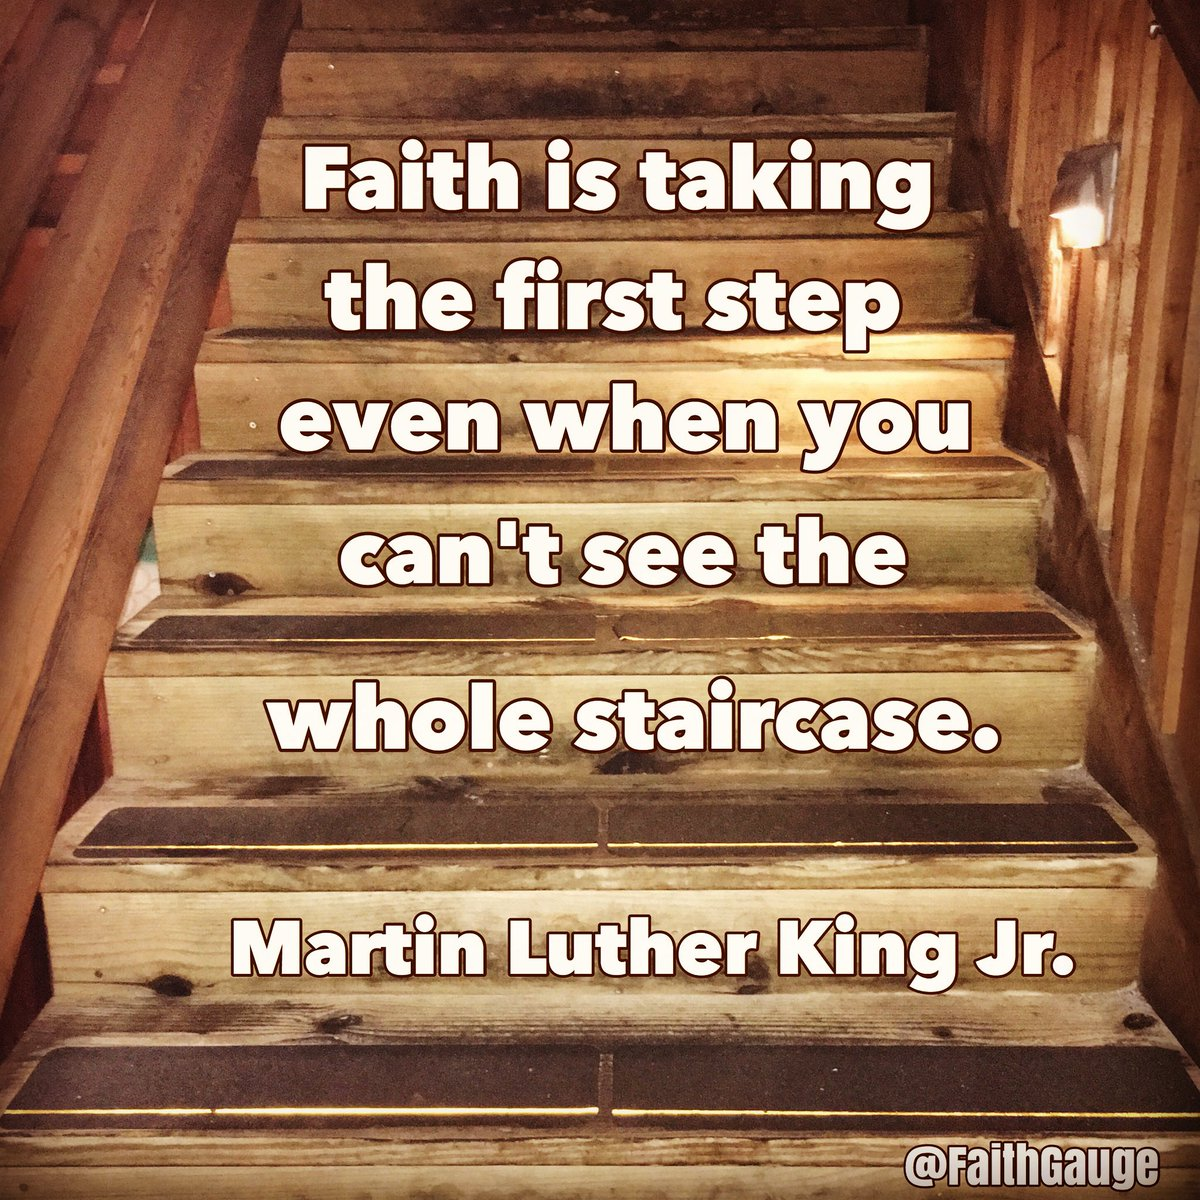 Faith requires action. Do not be afraid to take a step of faith and walk with God. God will direct us on the right path. #faith #follow #trust #walk #God #Guide #Lord #love #MLKDay #service #MondayMotivation #Christian #Christianity #stair #staircase